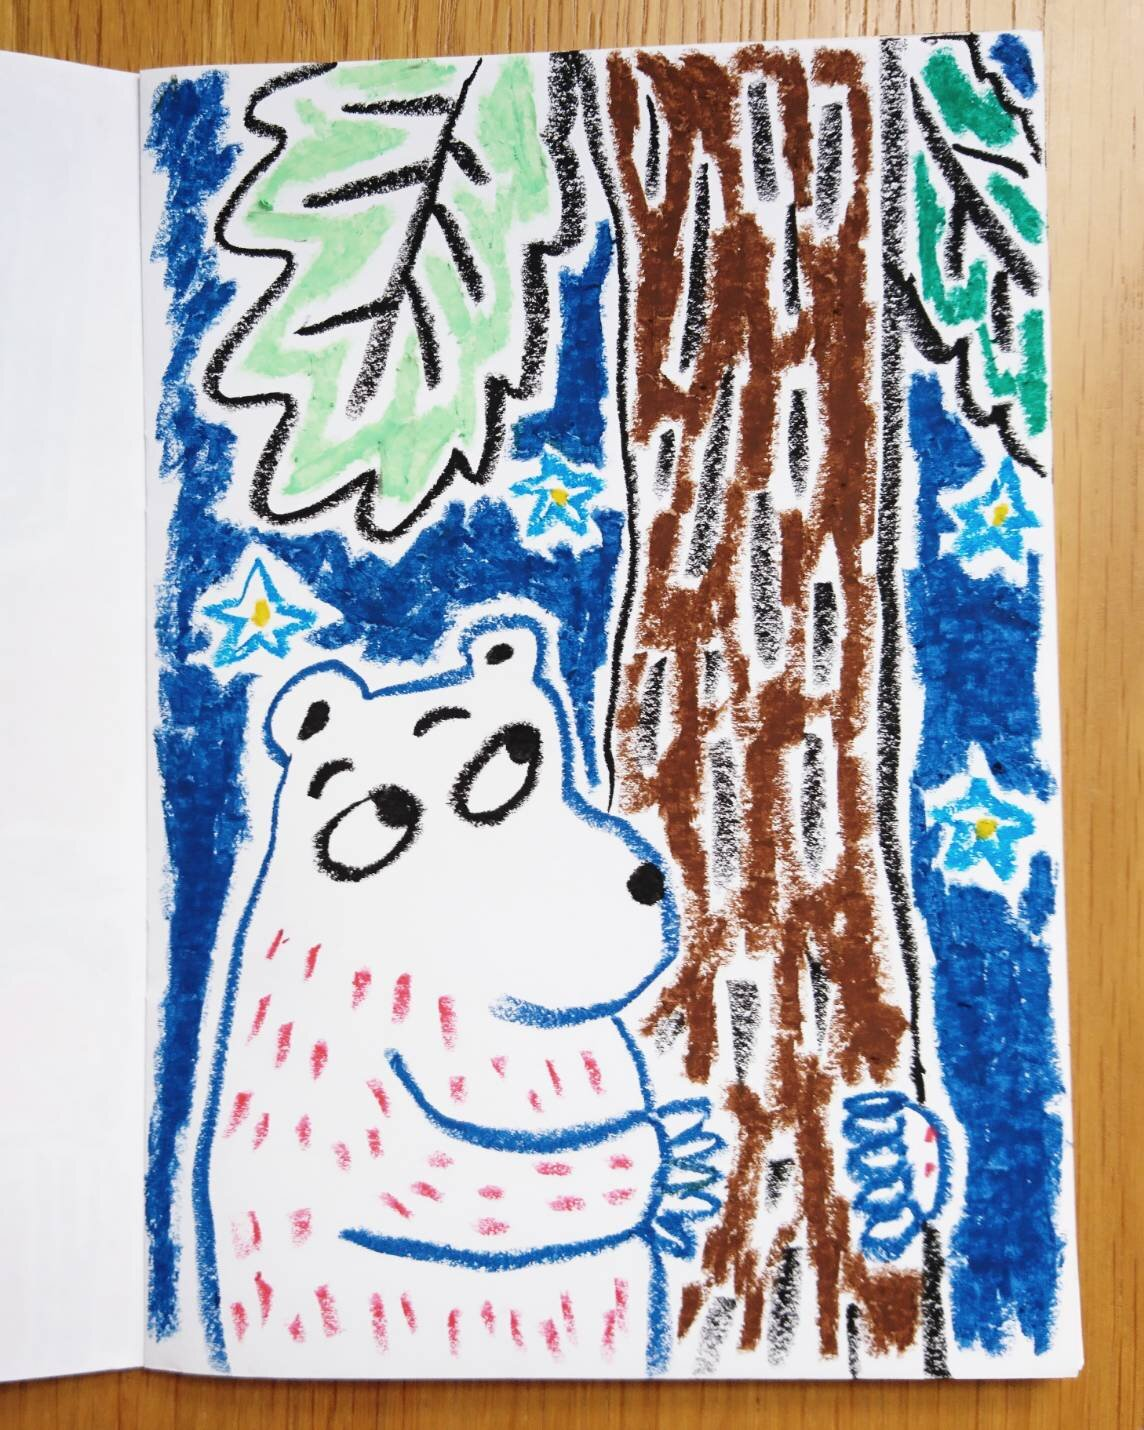 A polar bear hugged a tree.